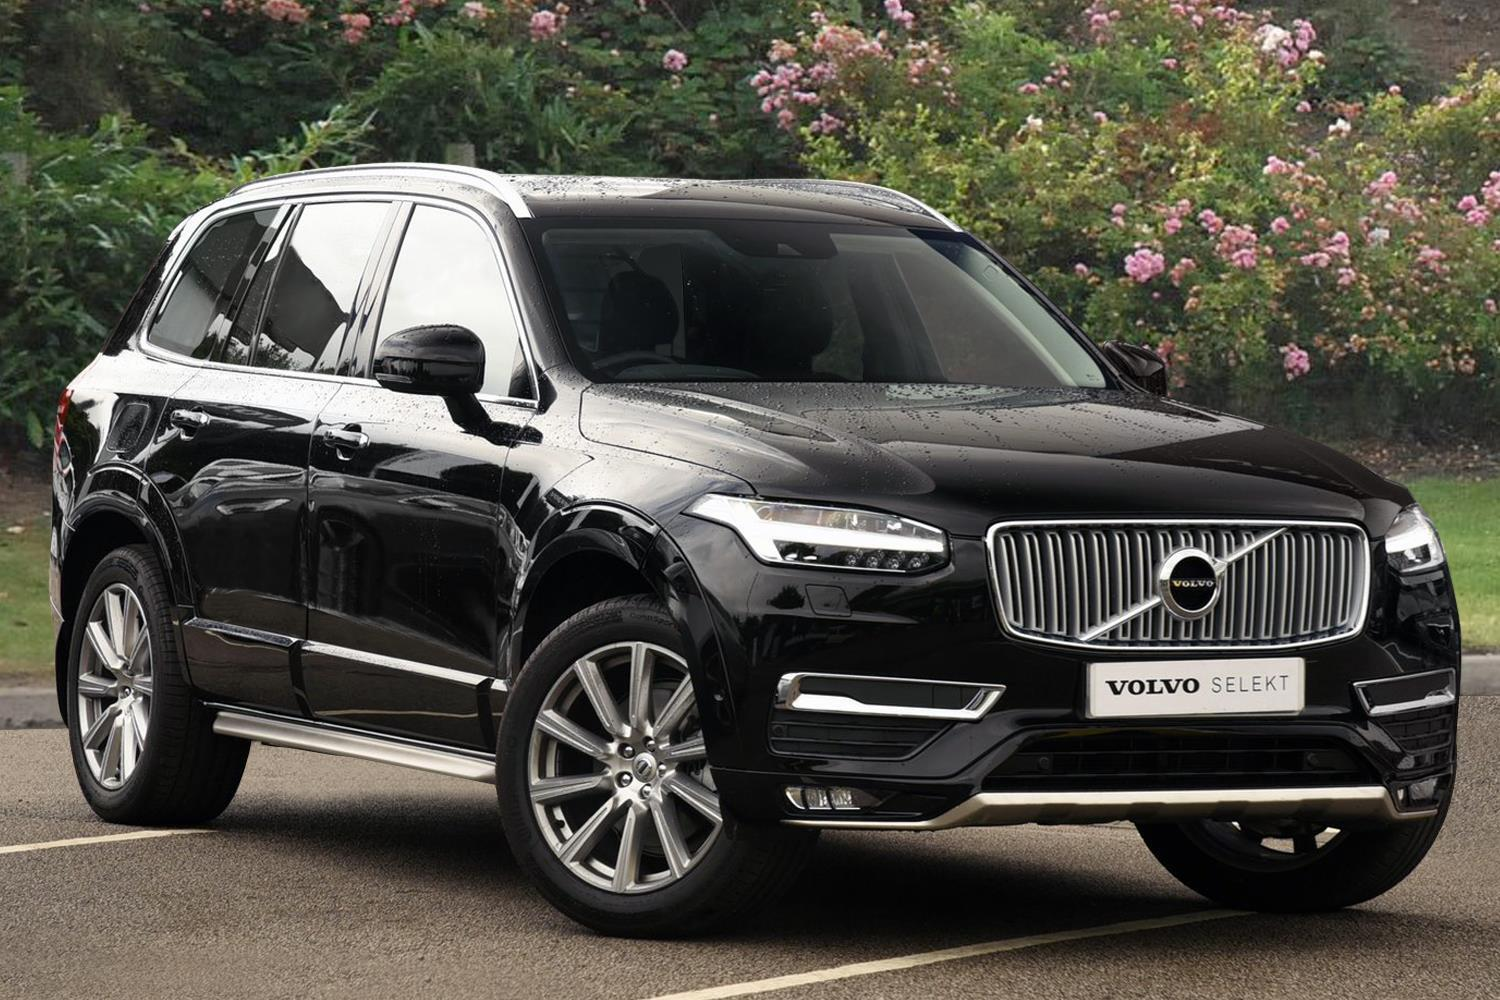 used volvo xc90 2 0 d5 powerpulse inscription 5dr awd. Black Bedroom Furniture Sets. Home Design Ideas